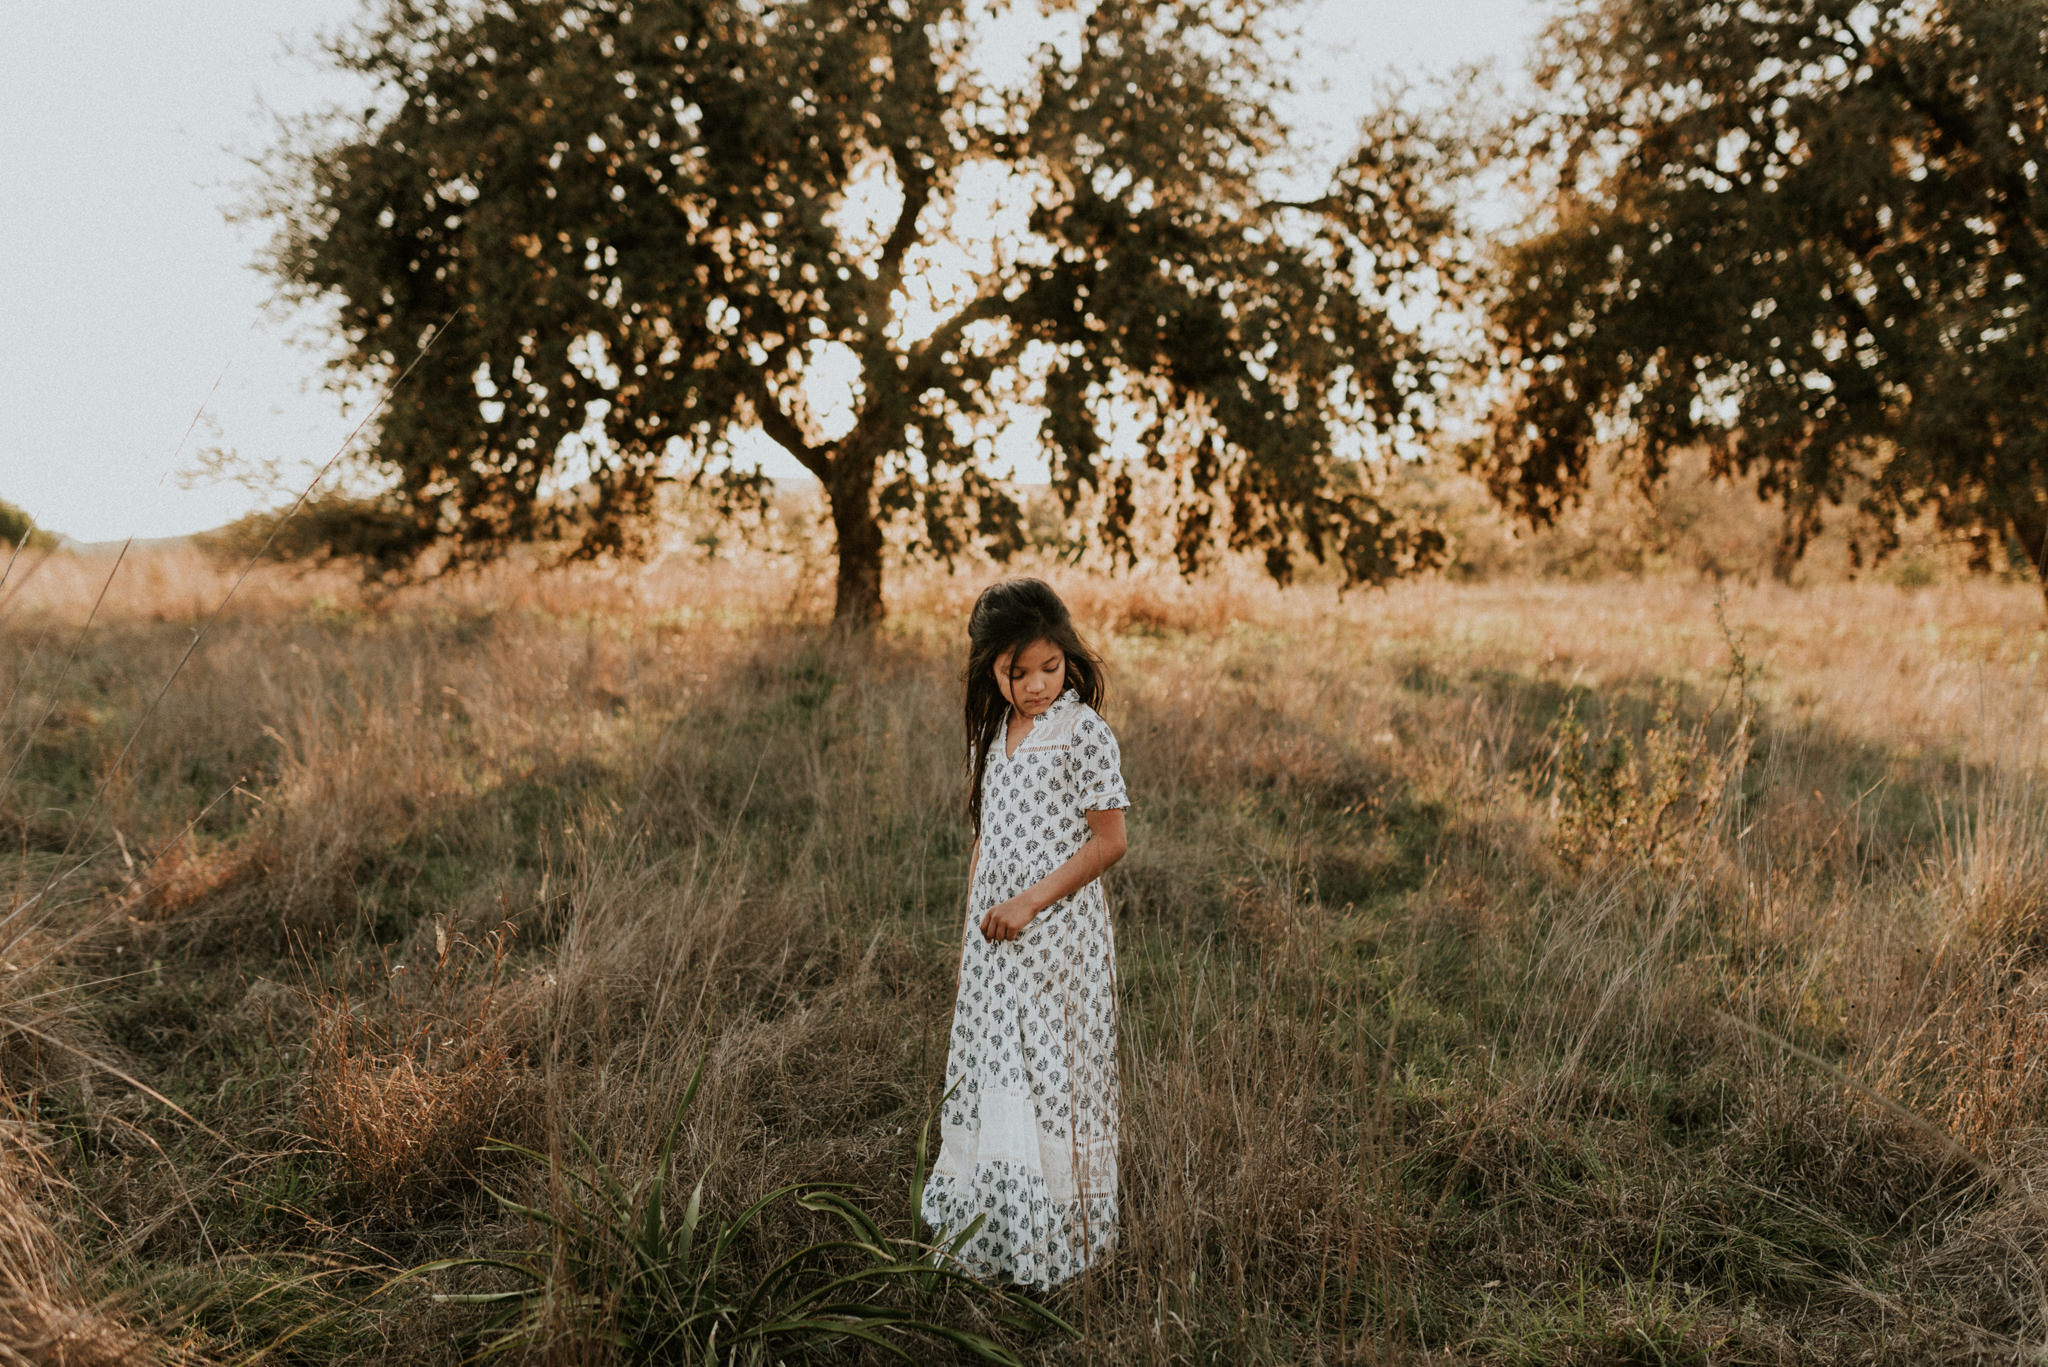 sunny-grassy-hills-filly-boo-family-maternity-session-at-joshua-springs-kerlyn-van-gelder-photography-san-antonio-photographer